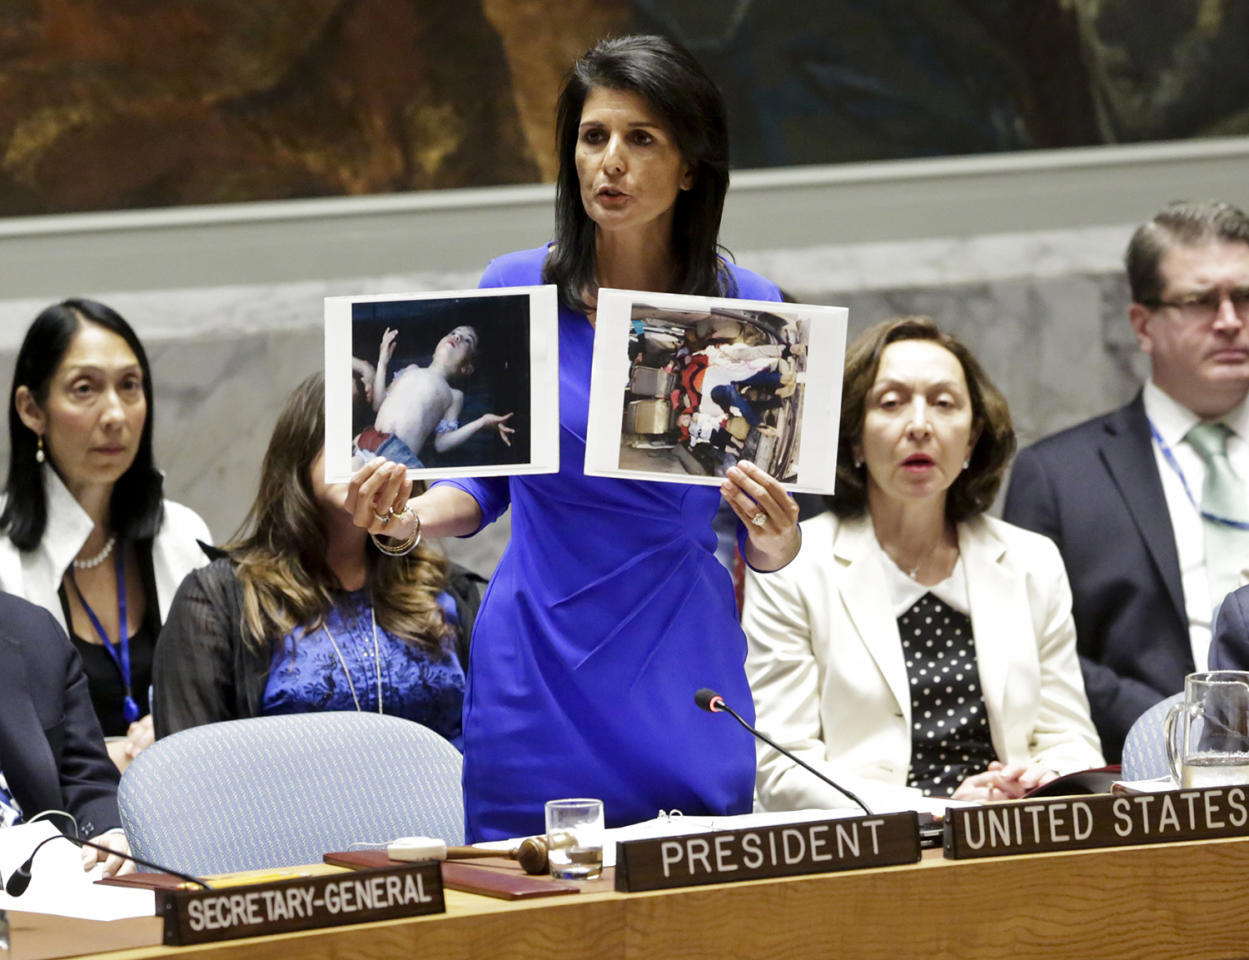 <p>Nikki Haley, United States' Ambassador United Nations, shows pictures of Syrian victims of chemical attacks as she addresses a meeting of the Security Council on Syria at U.N. headquarters, Wednesday, April 5, 2017. (Photo: Bebeto Matthews/AP) </p>